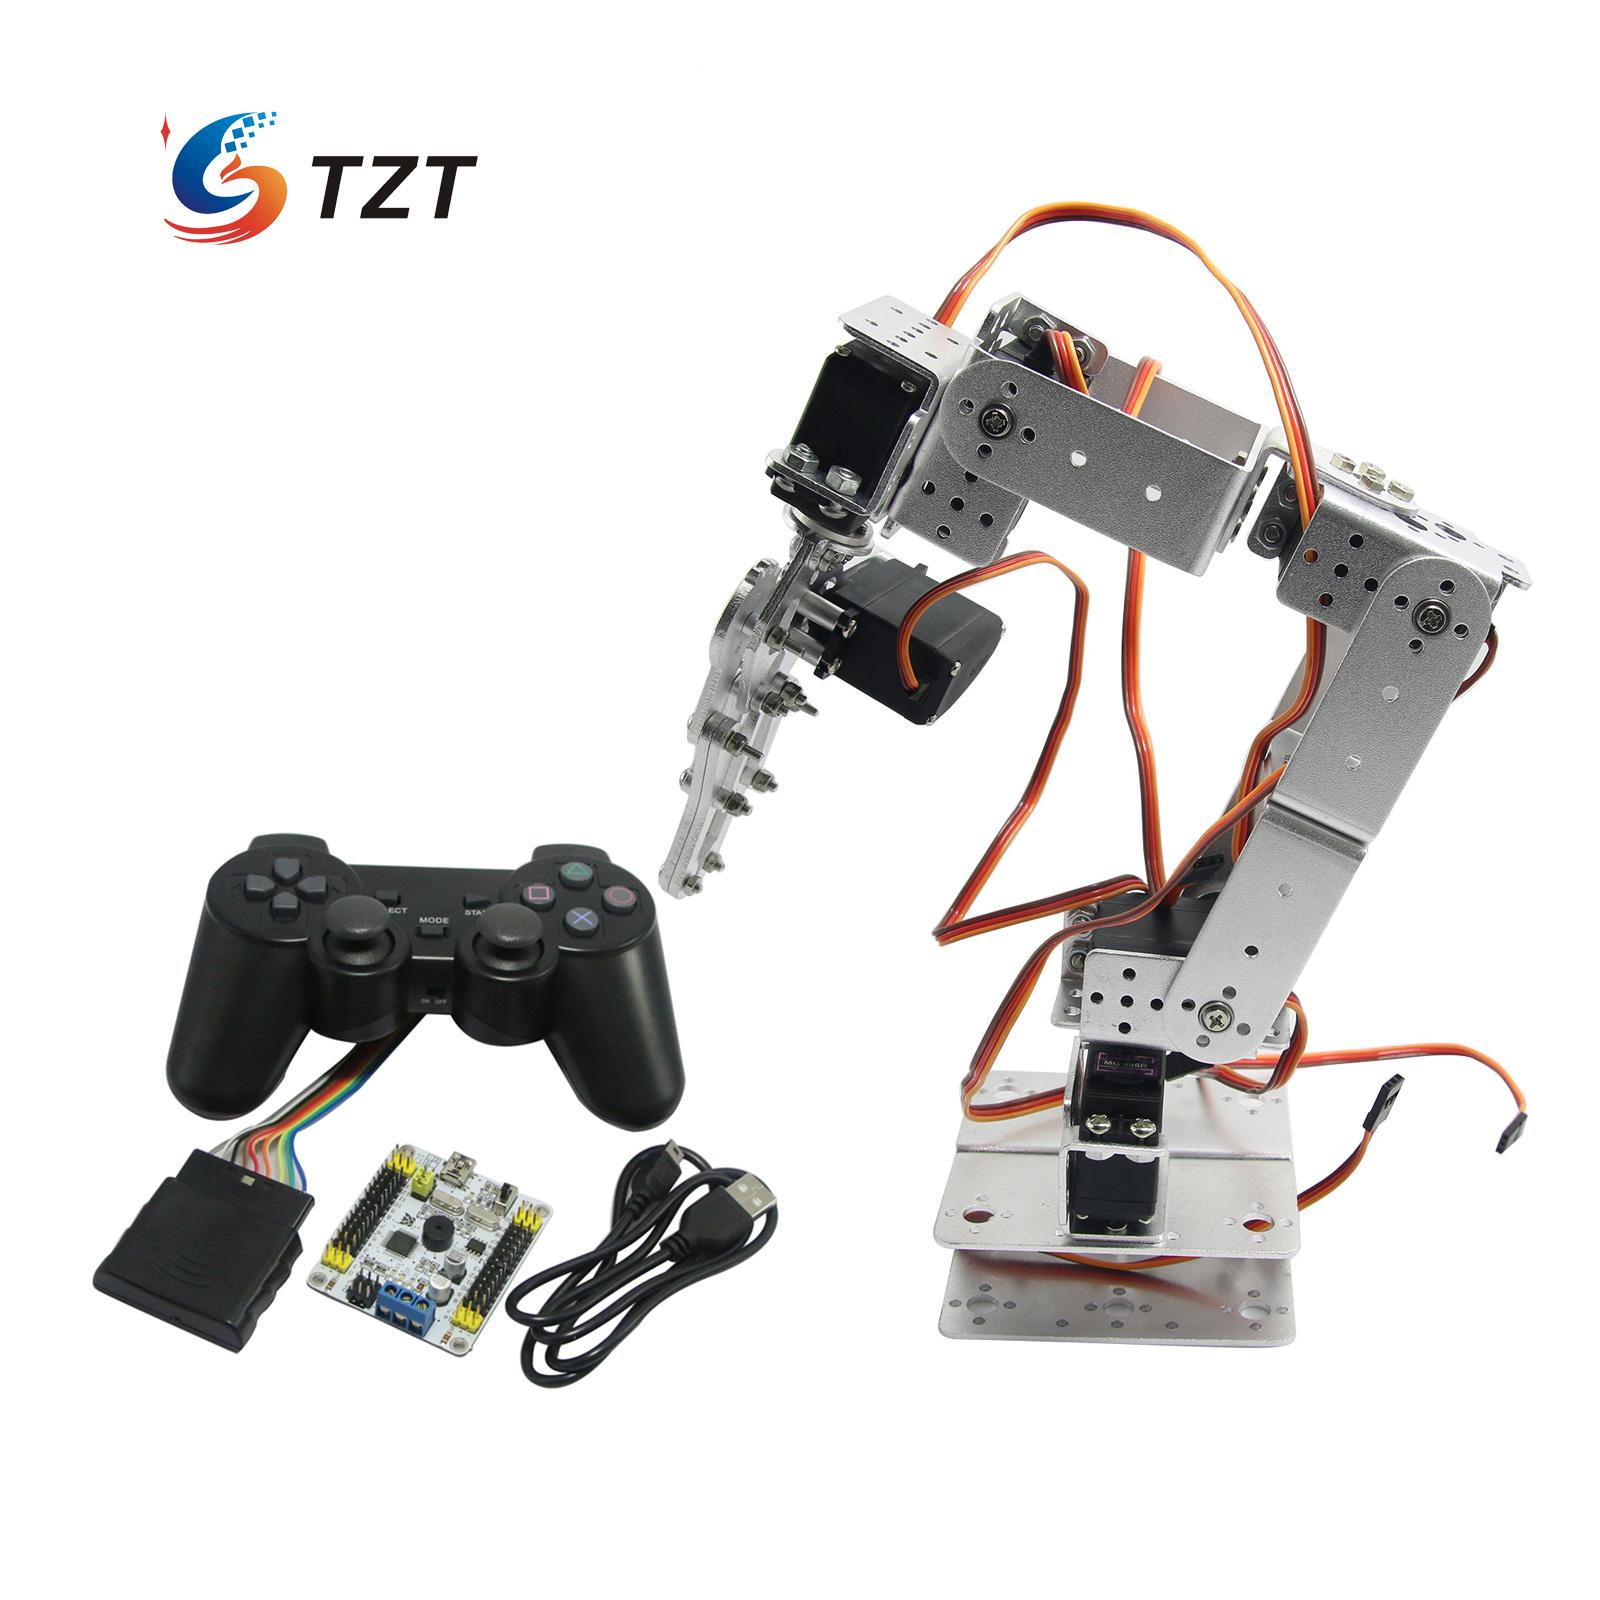 Assembled Robot 6 DOF Arm Mechanical Robotic Clamp Claw with LD 1501 Servos Controller for Arduino